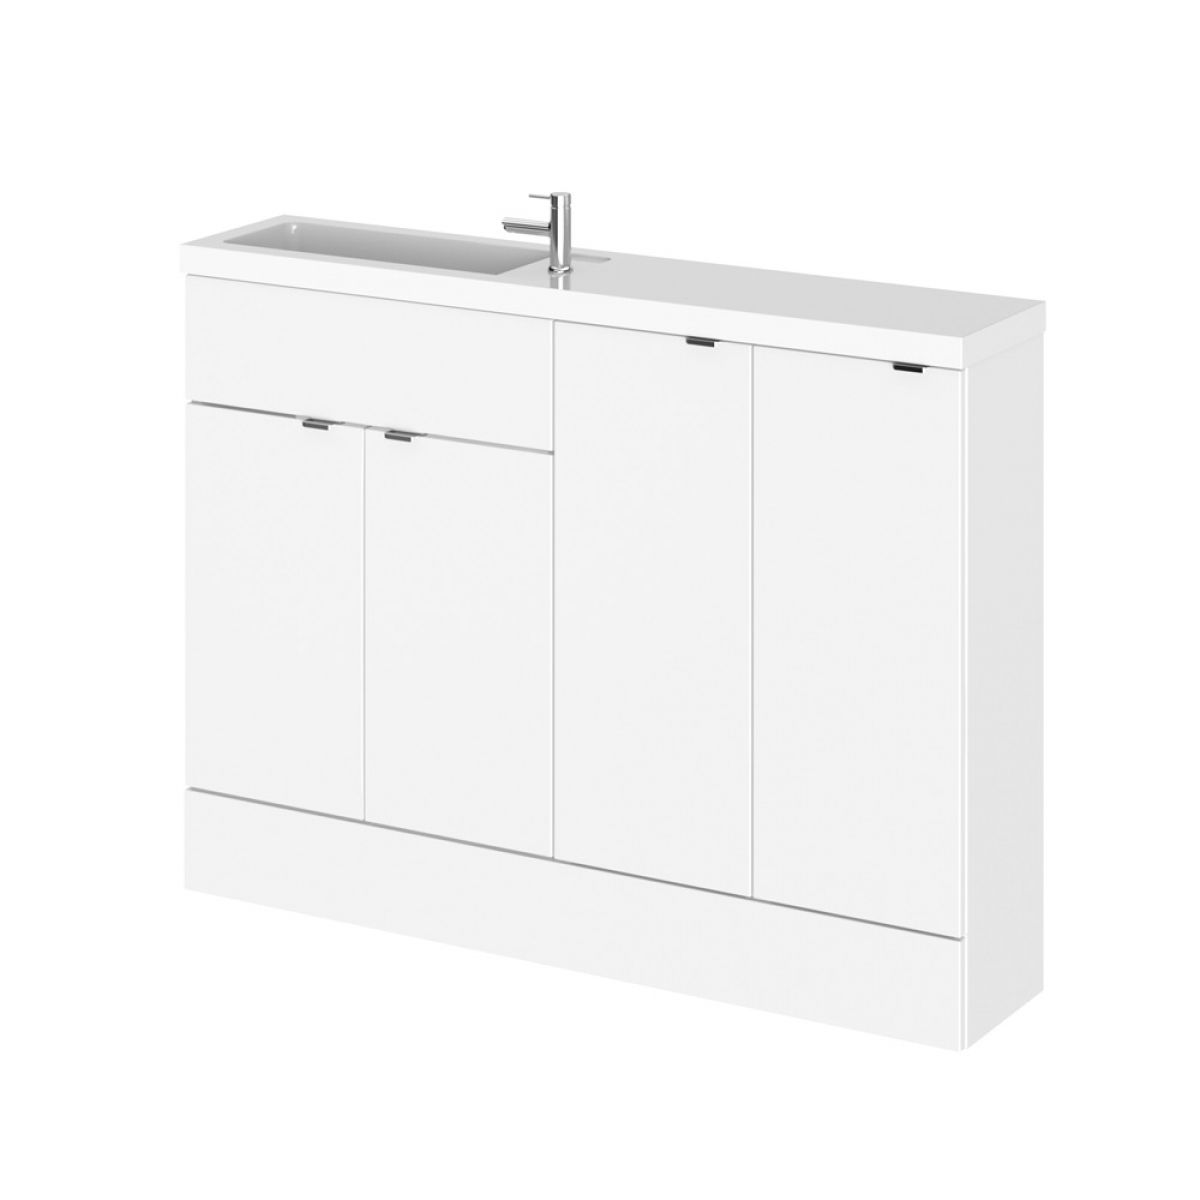 Hudson Reed Fusion Gloss White Slimline Combination Furniture Pack 1200mm